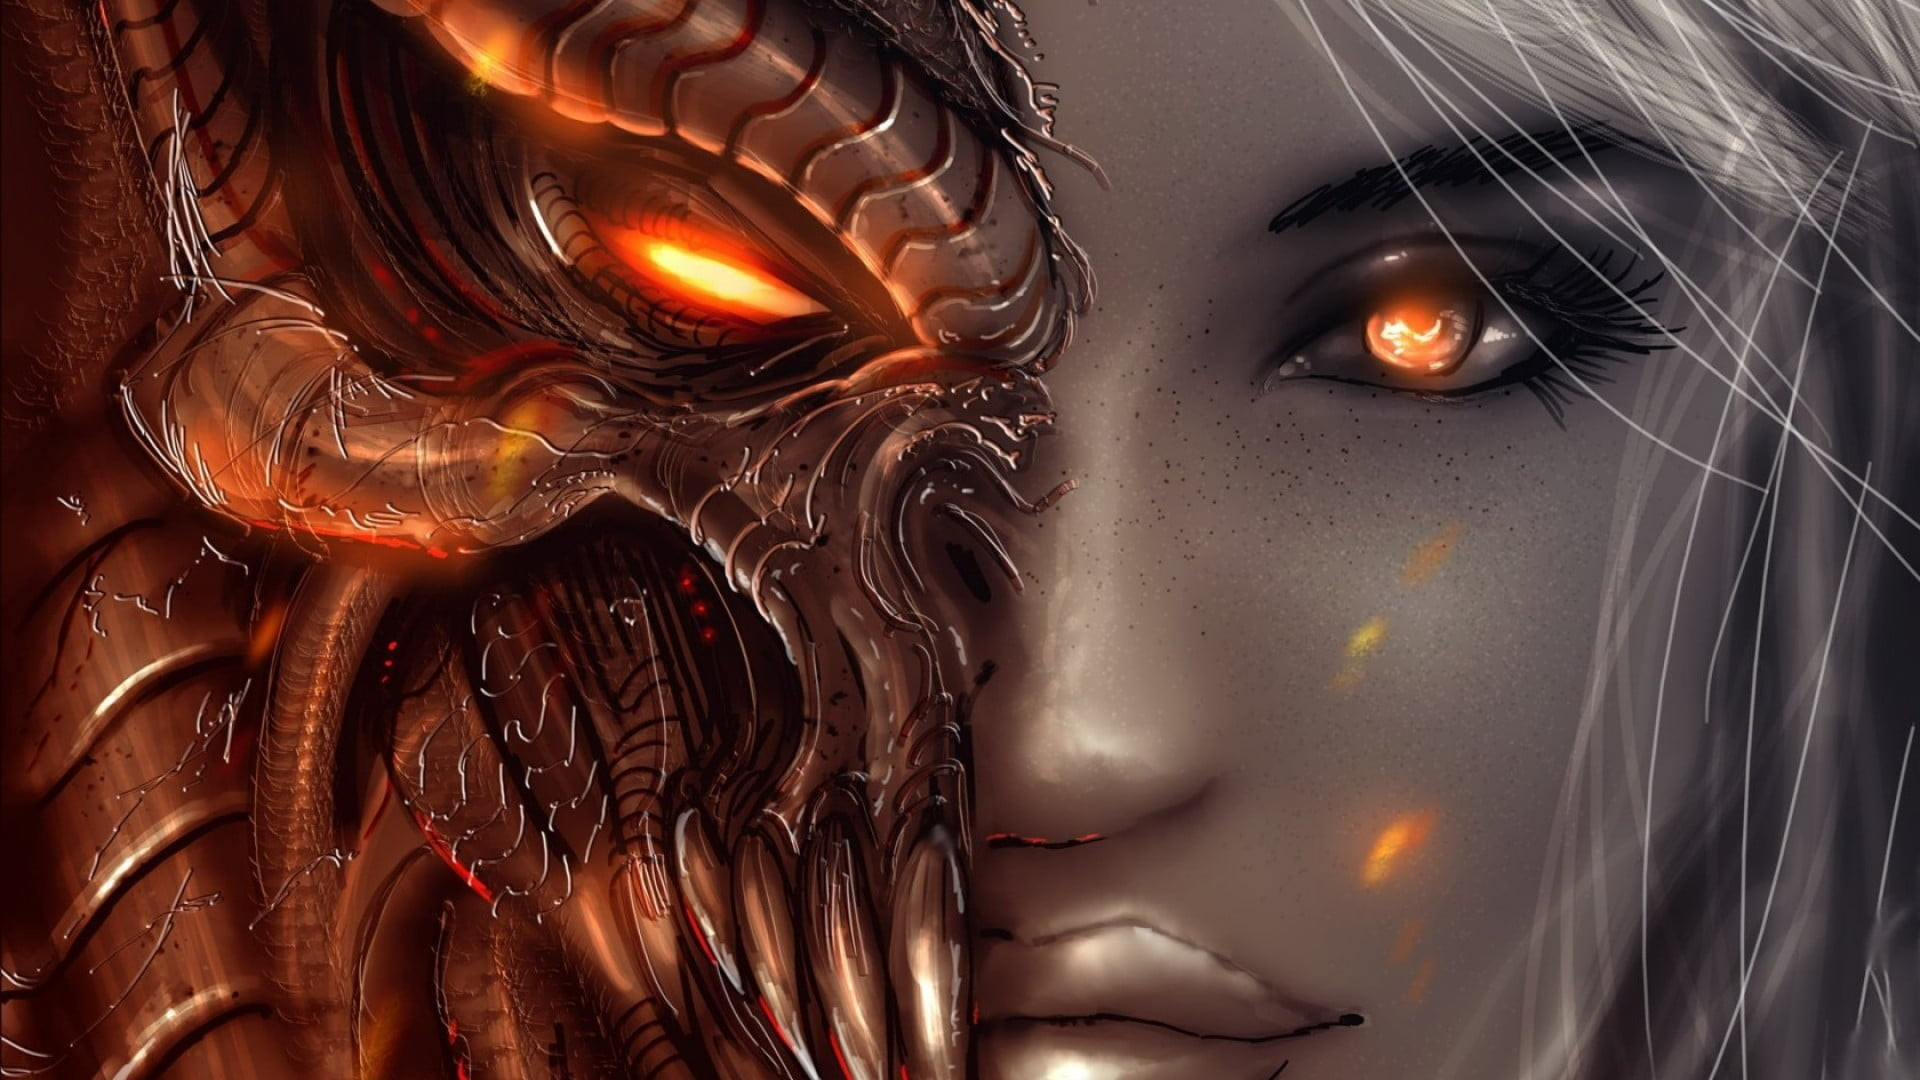 Res: 1920x1080, female character illustration HD wallpaper